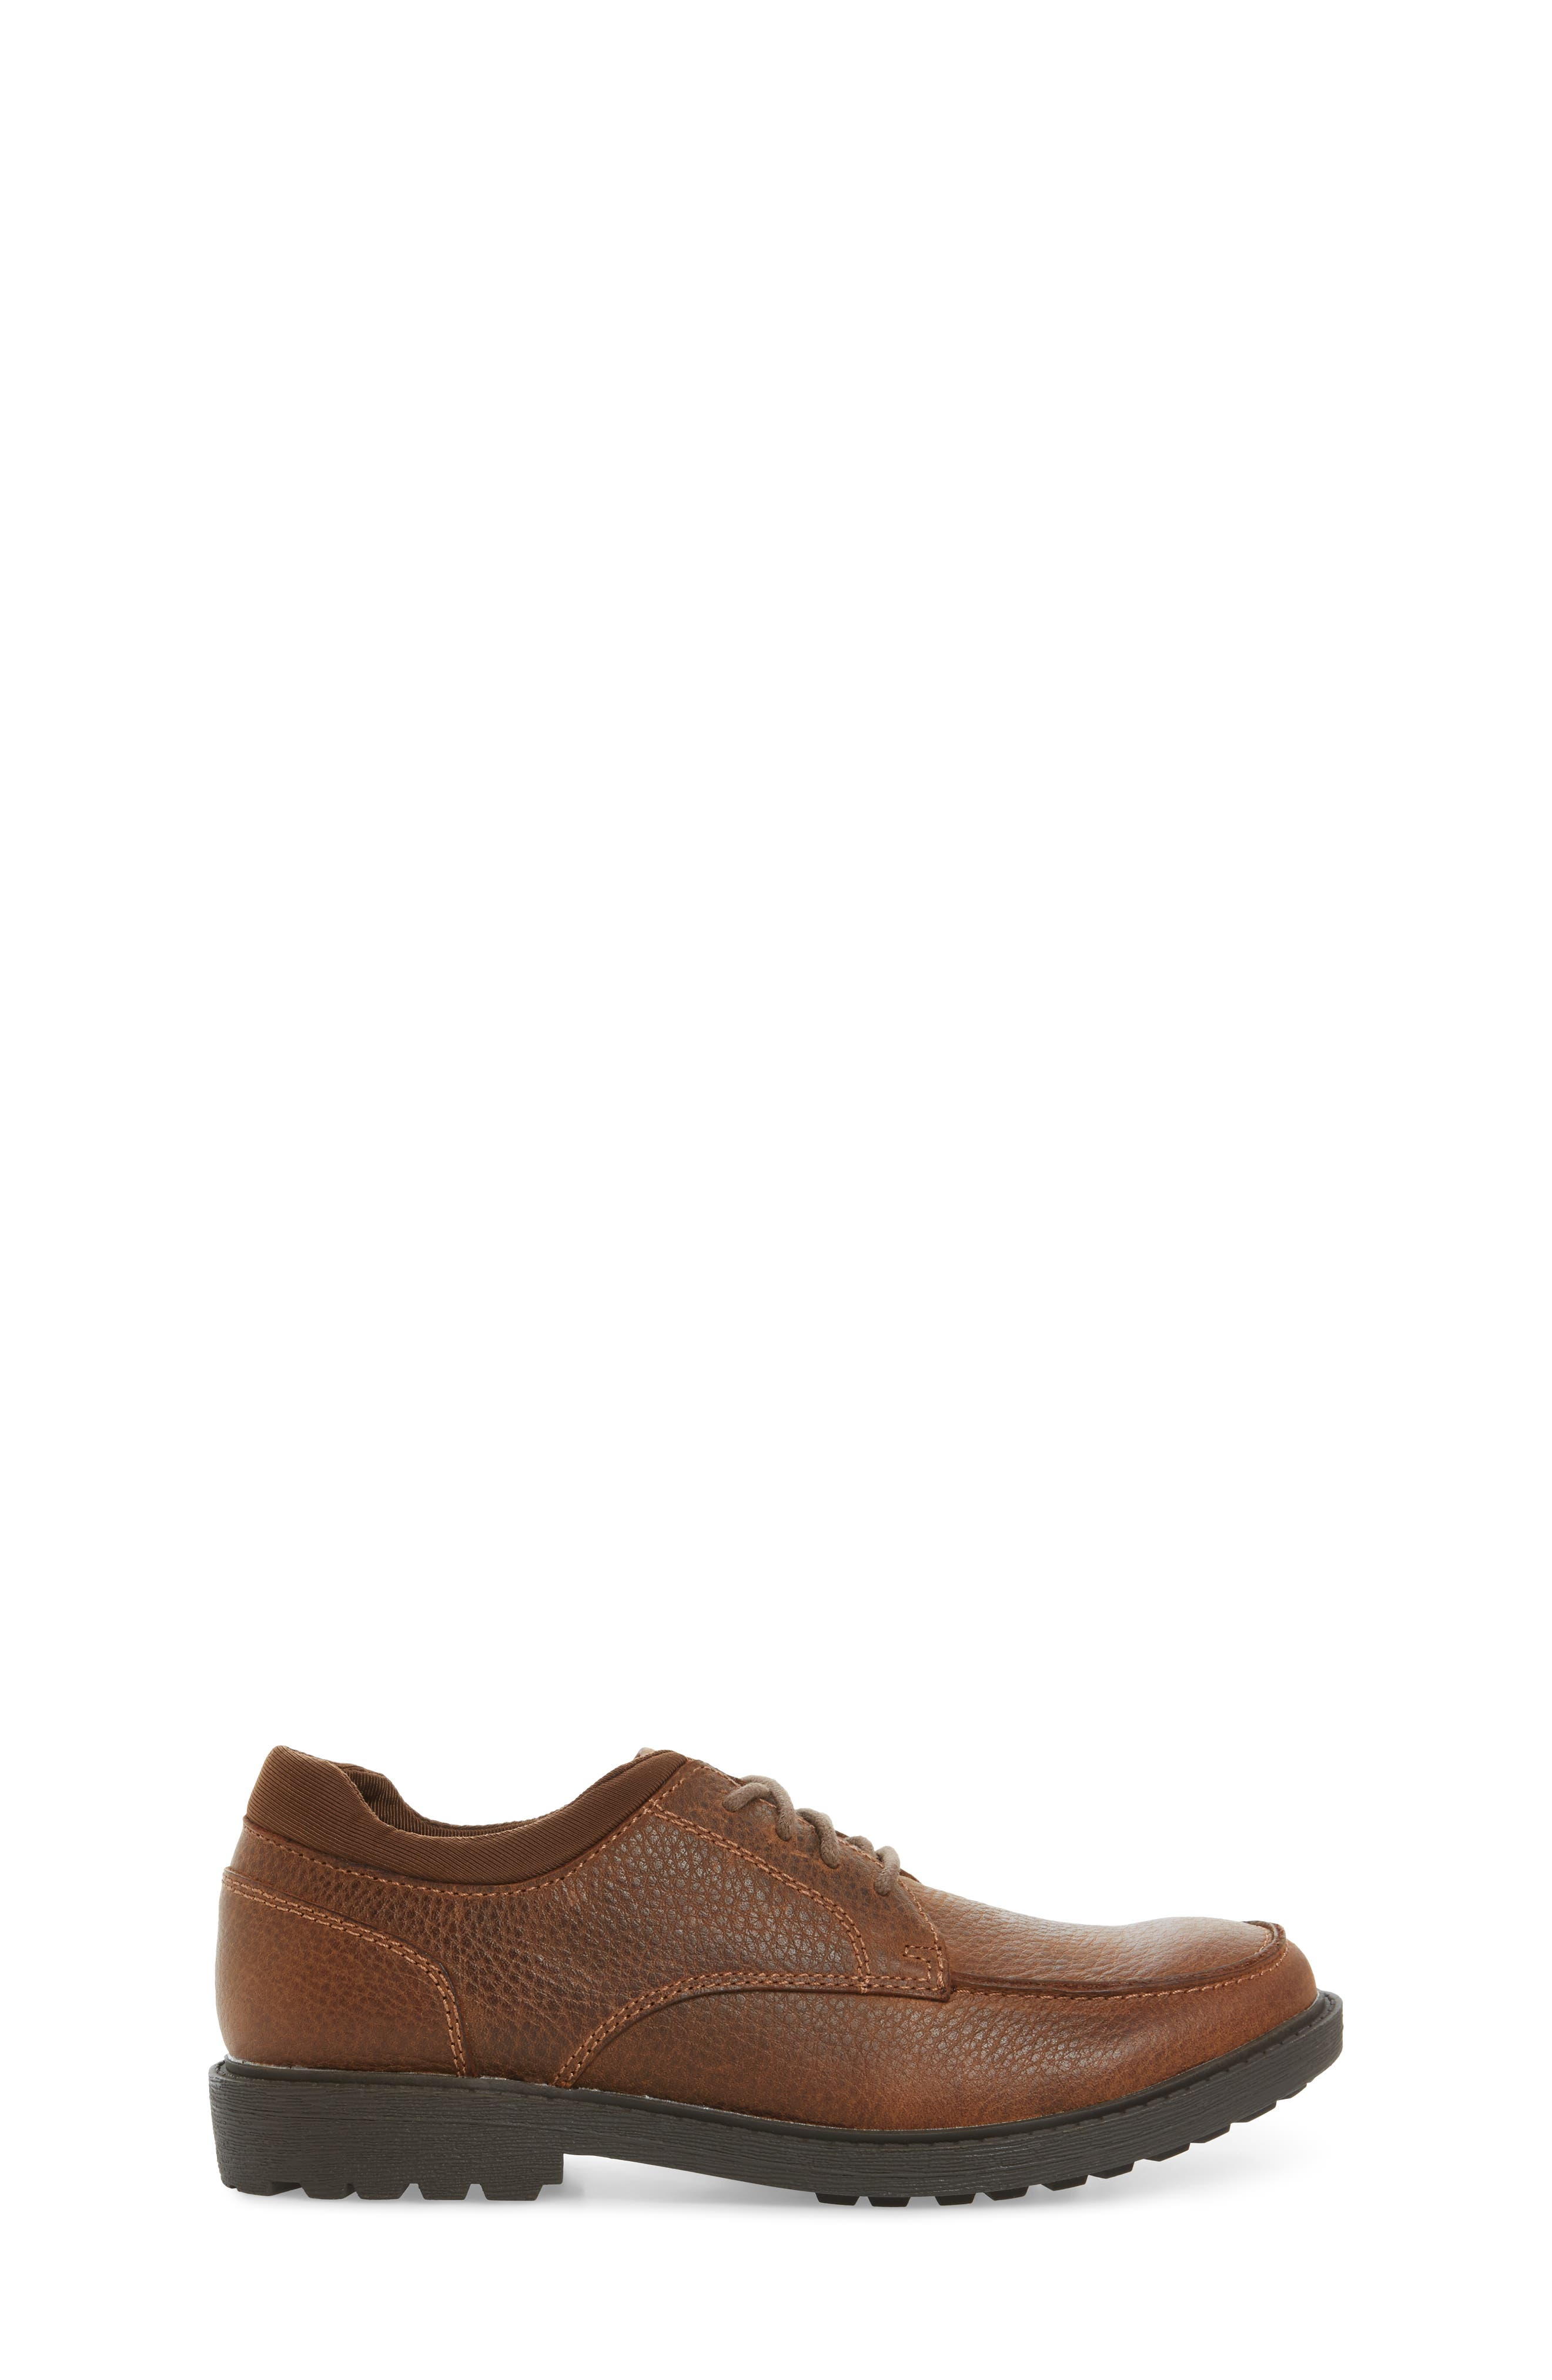 Alternate Image 3  - Kenneth Cole New York Strada Neocap Oxford (Toddler, Little Kid & Big Kid)